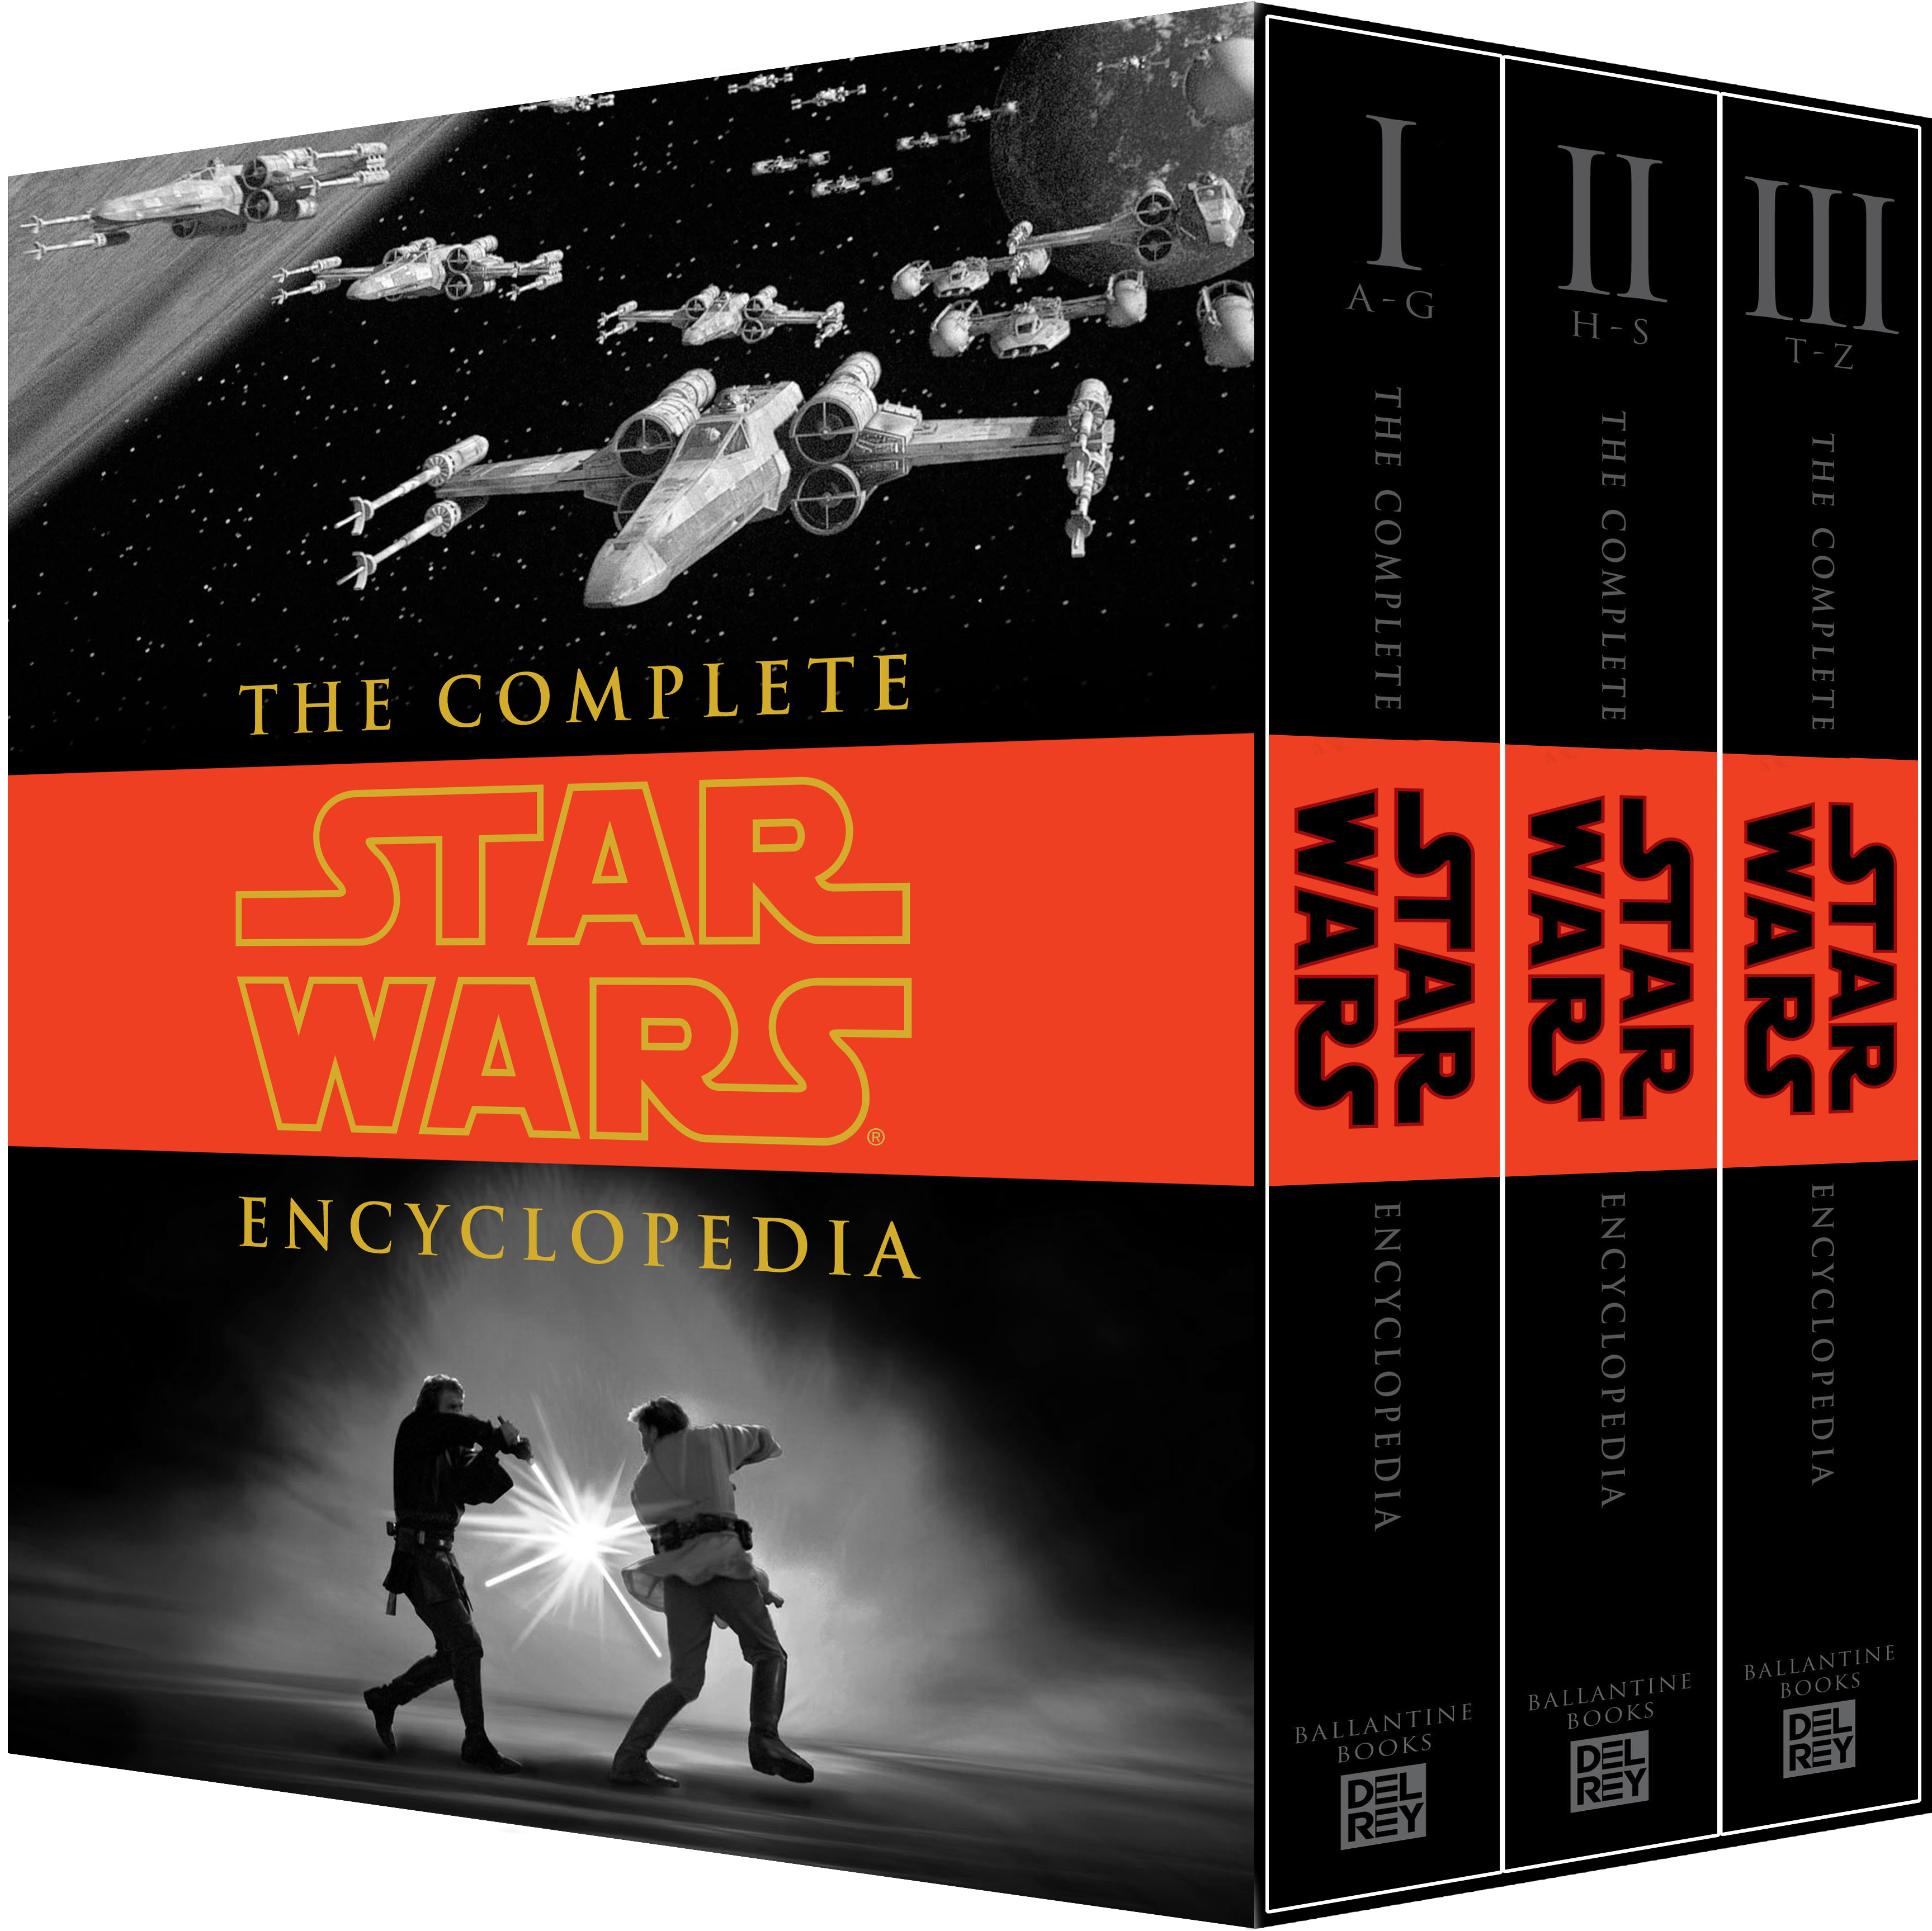 The Complete Star Wars Encyclopedia (Volumes I-III)